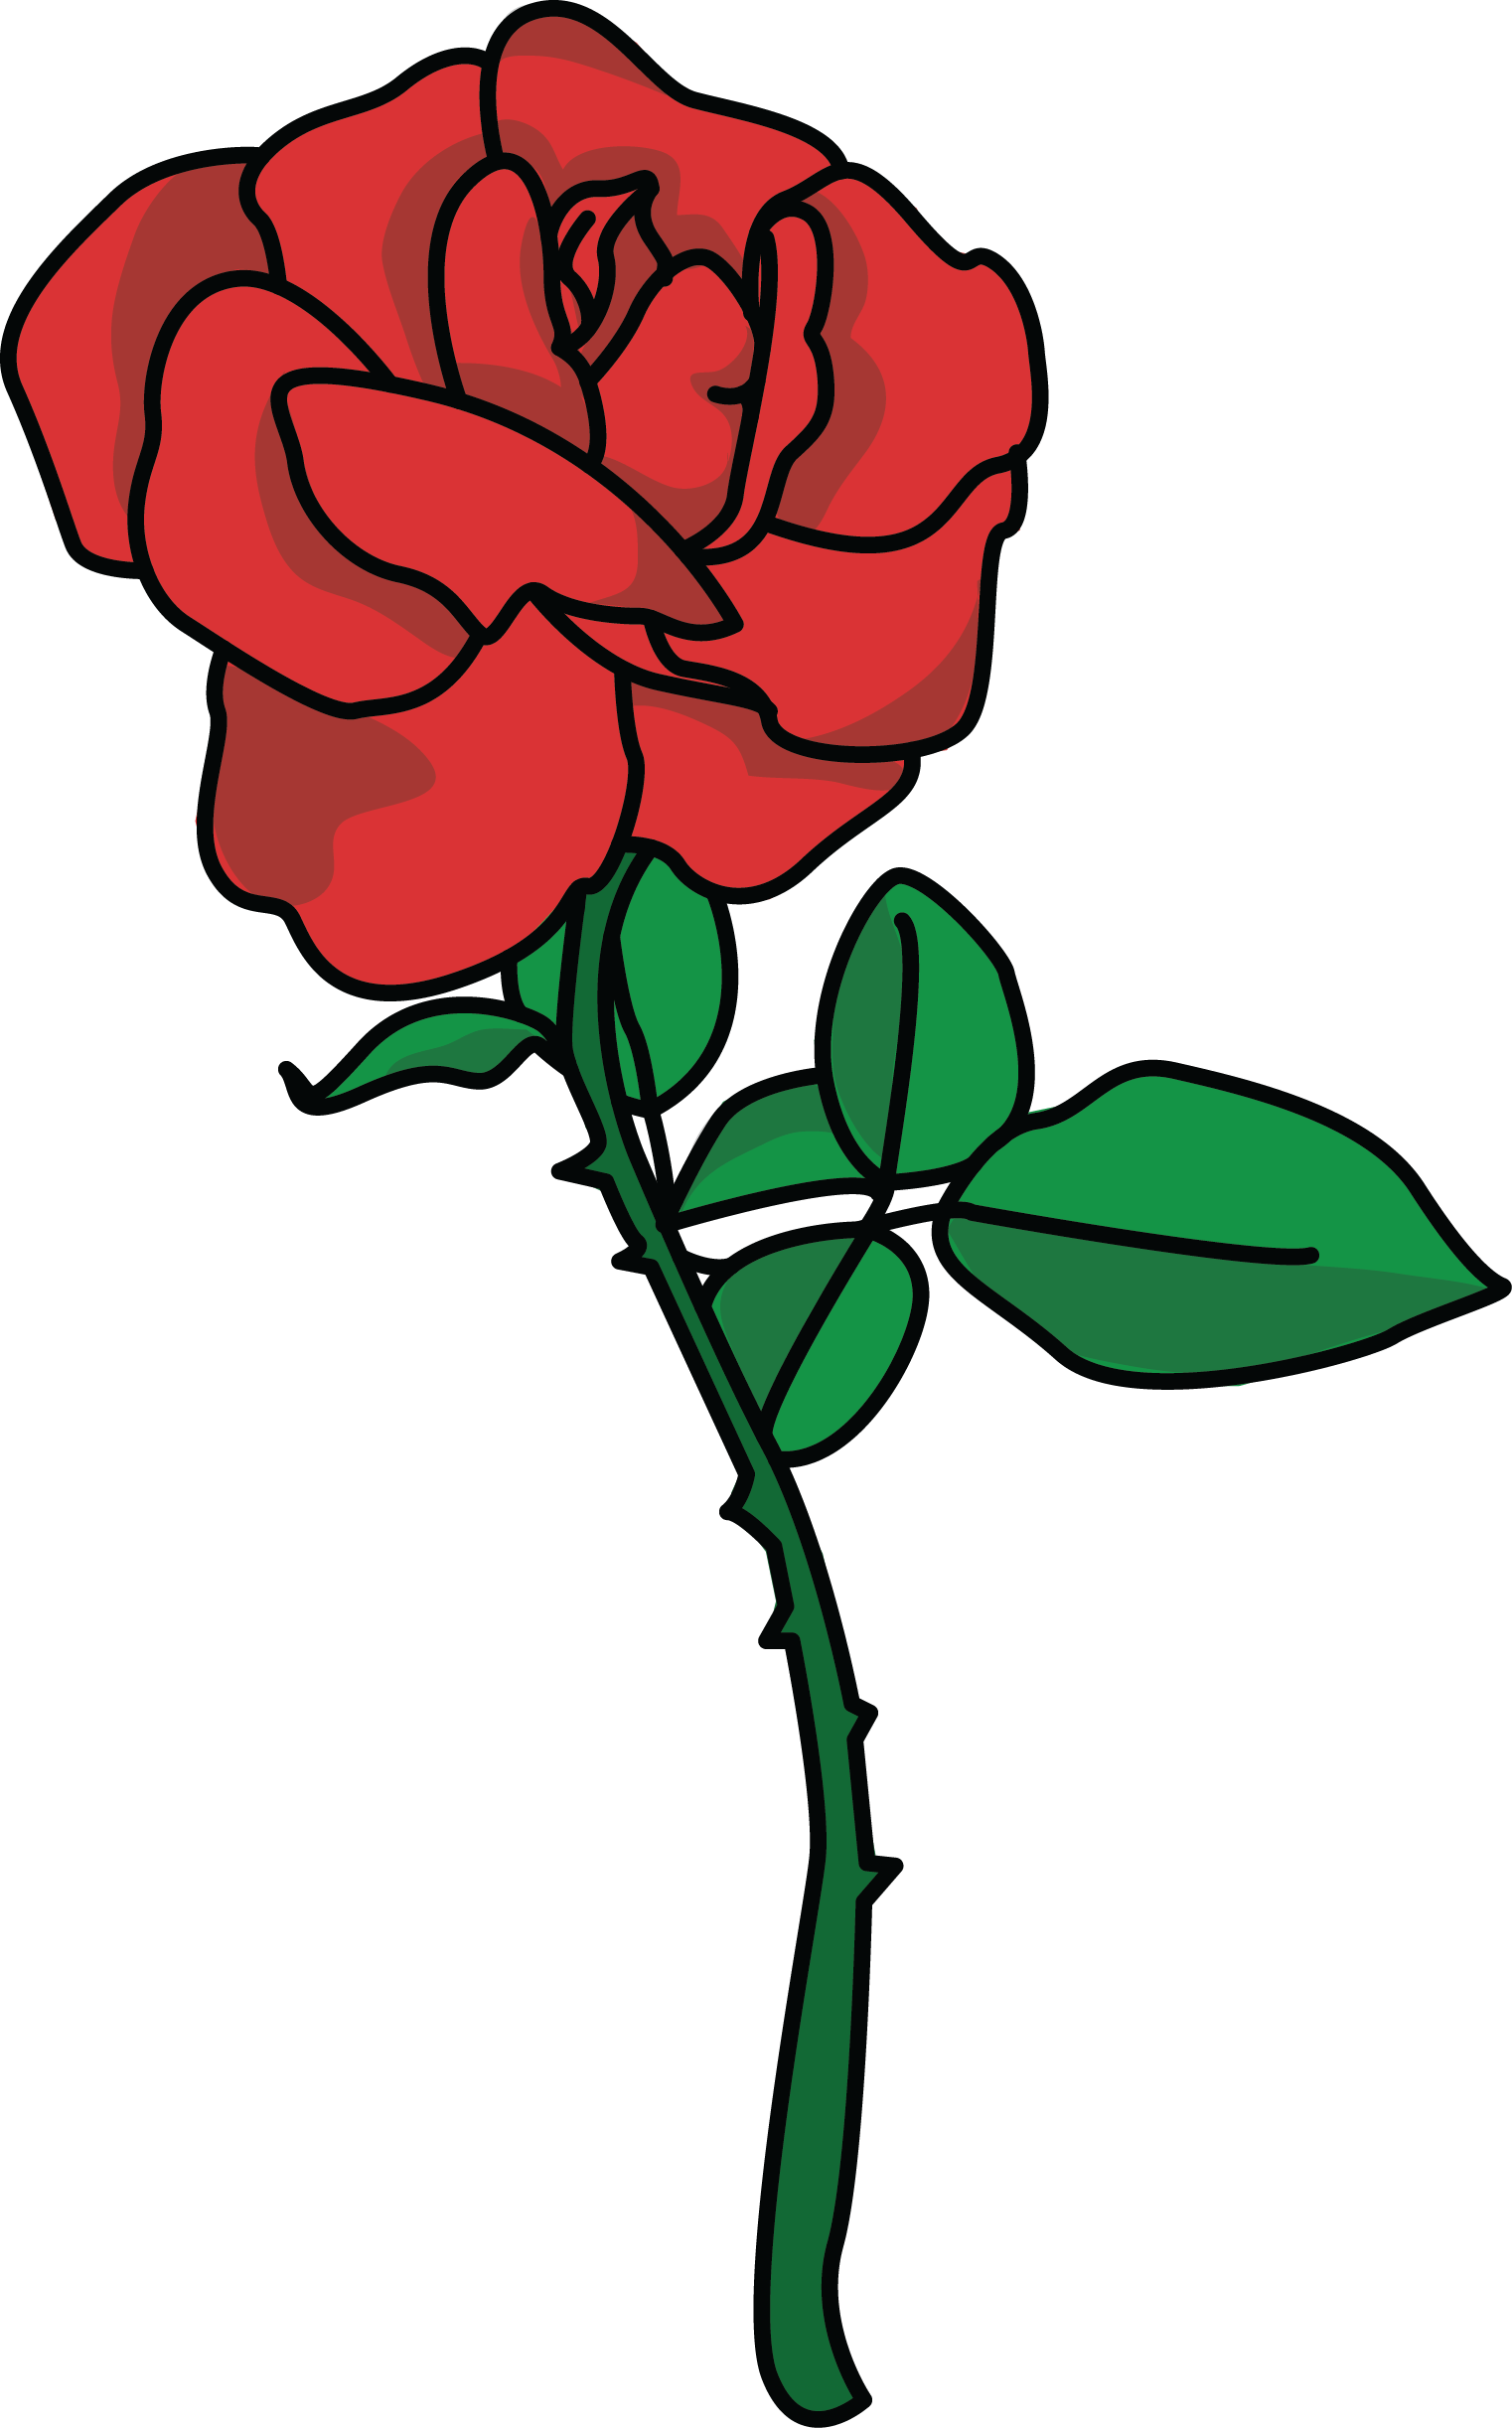 Clipart rose high resolution, Clipart rose high resolution.